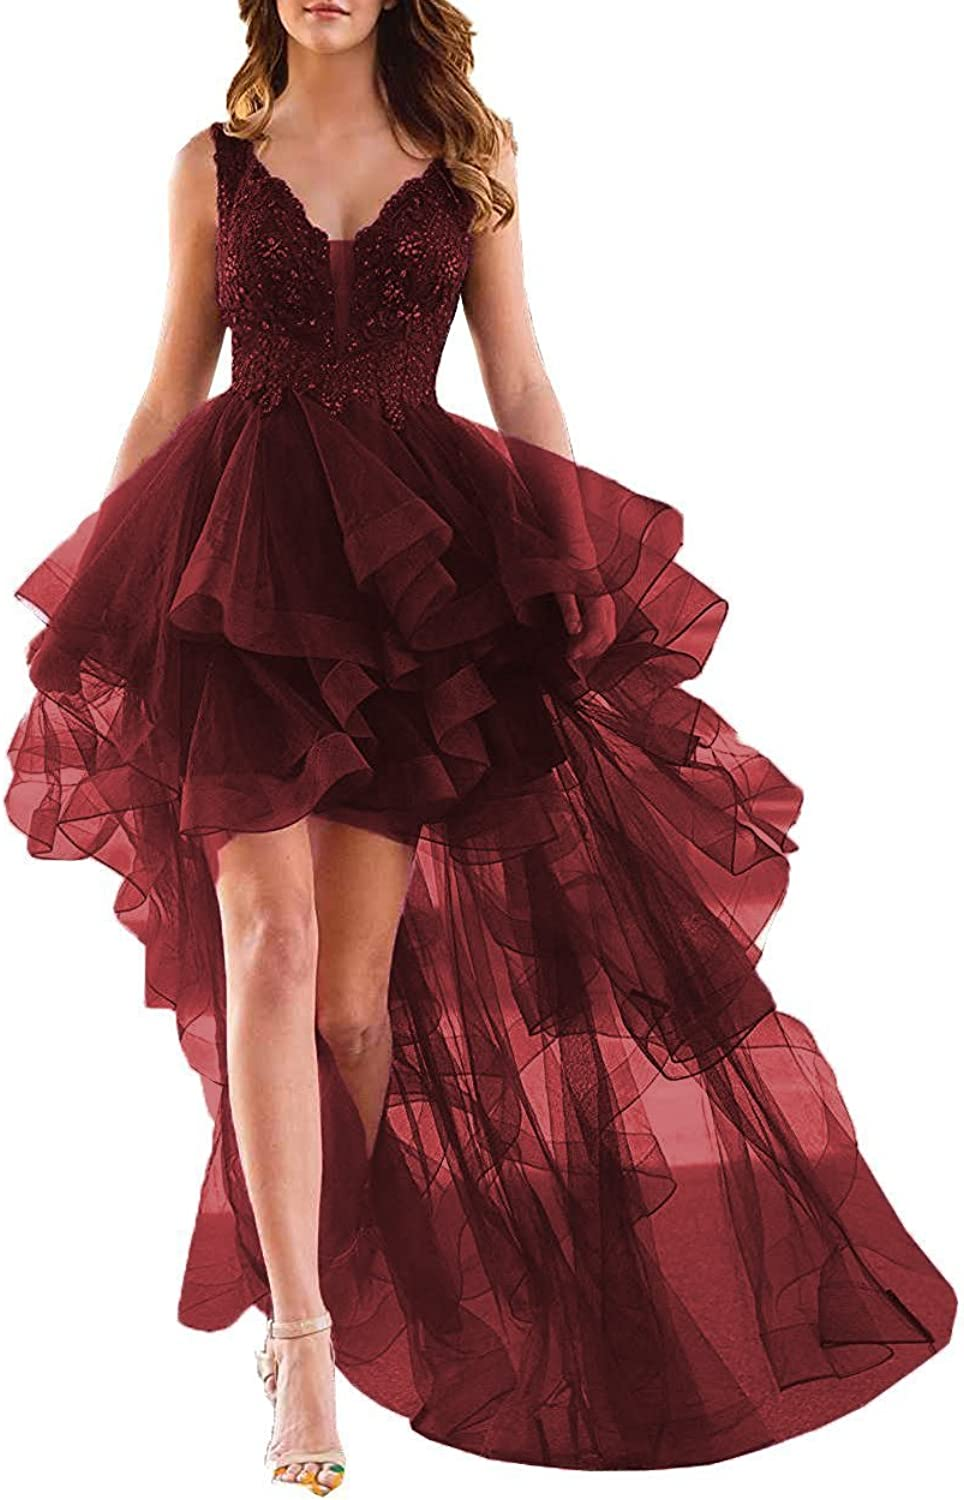 High Low Homecoming Dresses Beaded V Neck Appliques Ruffled Evening Formal Gowns